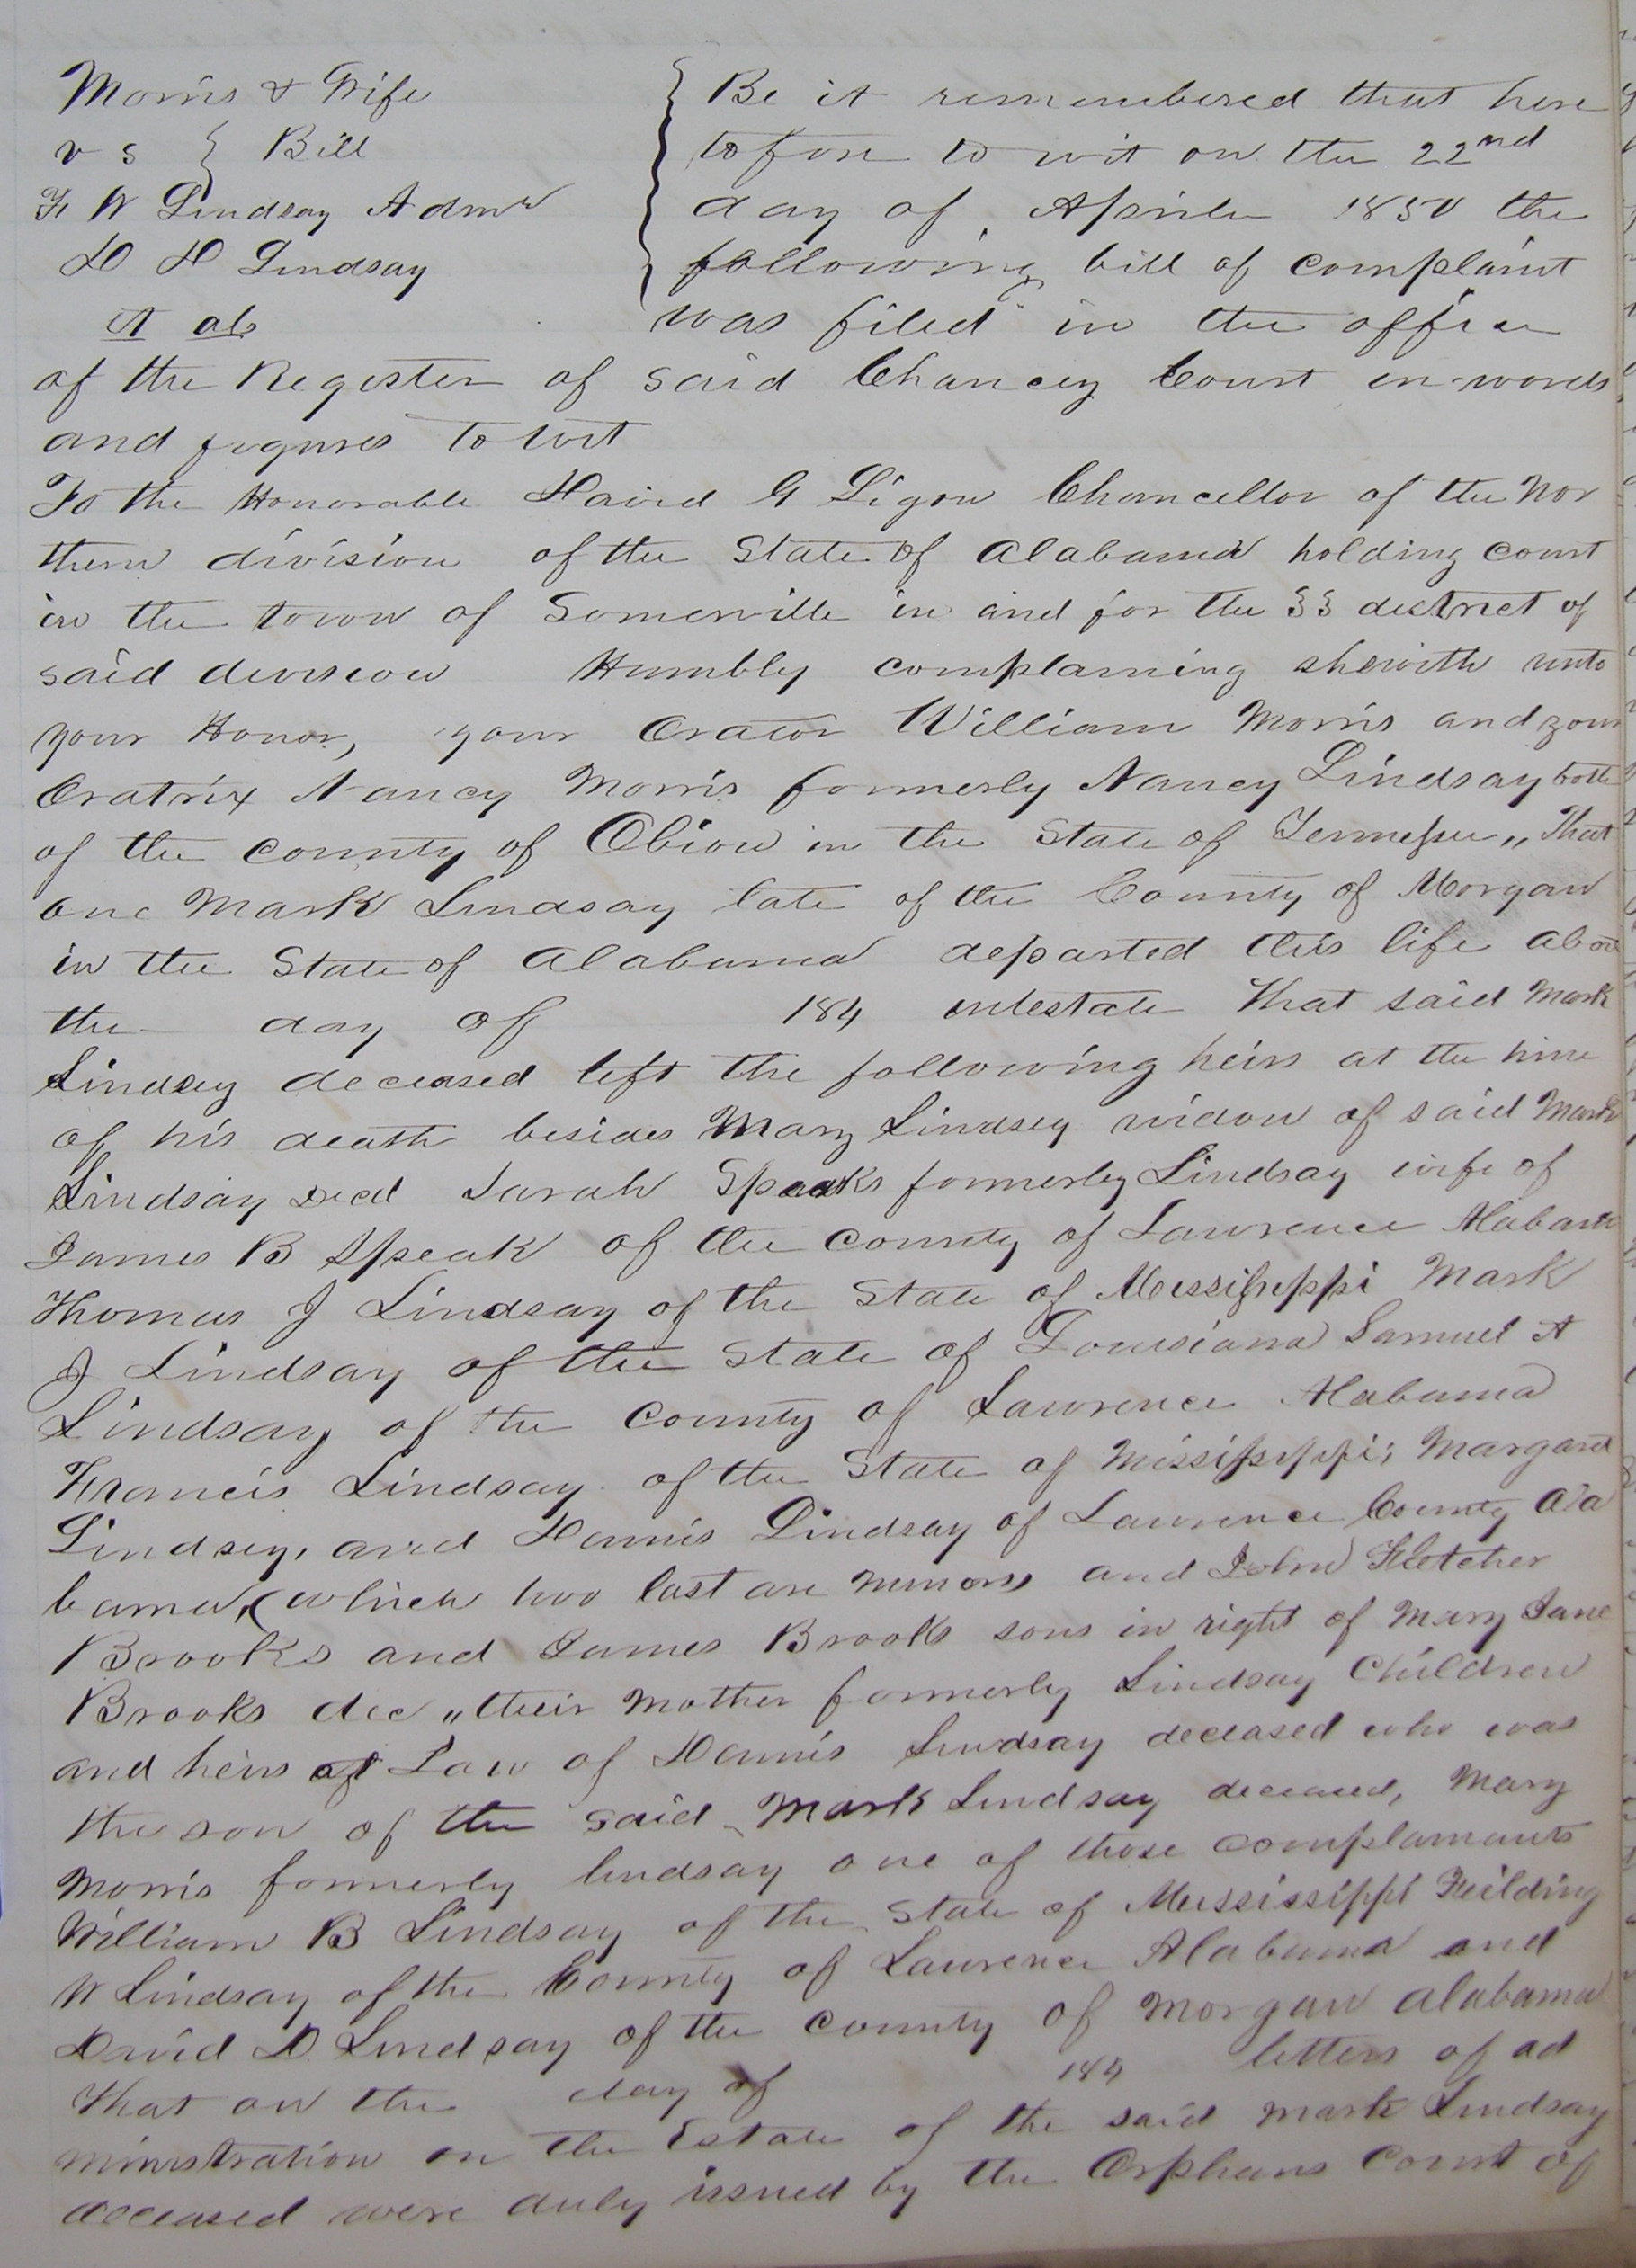 Morgan County, Alabama, Chancery Court Minutes, Bk. 1843-1855, p. 530